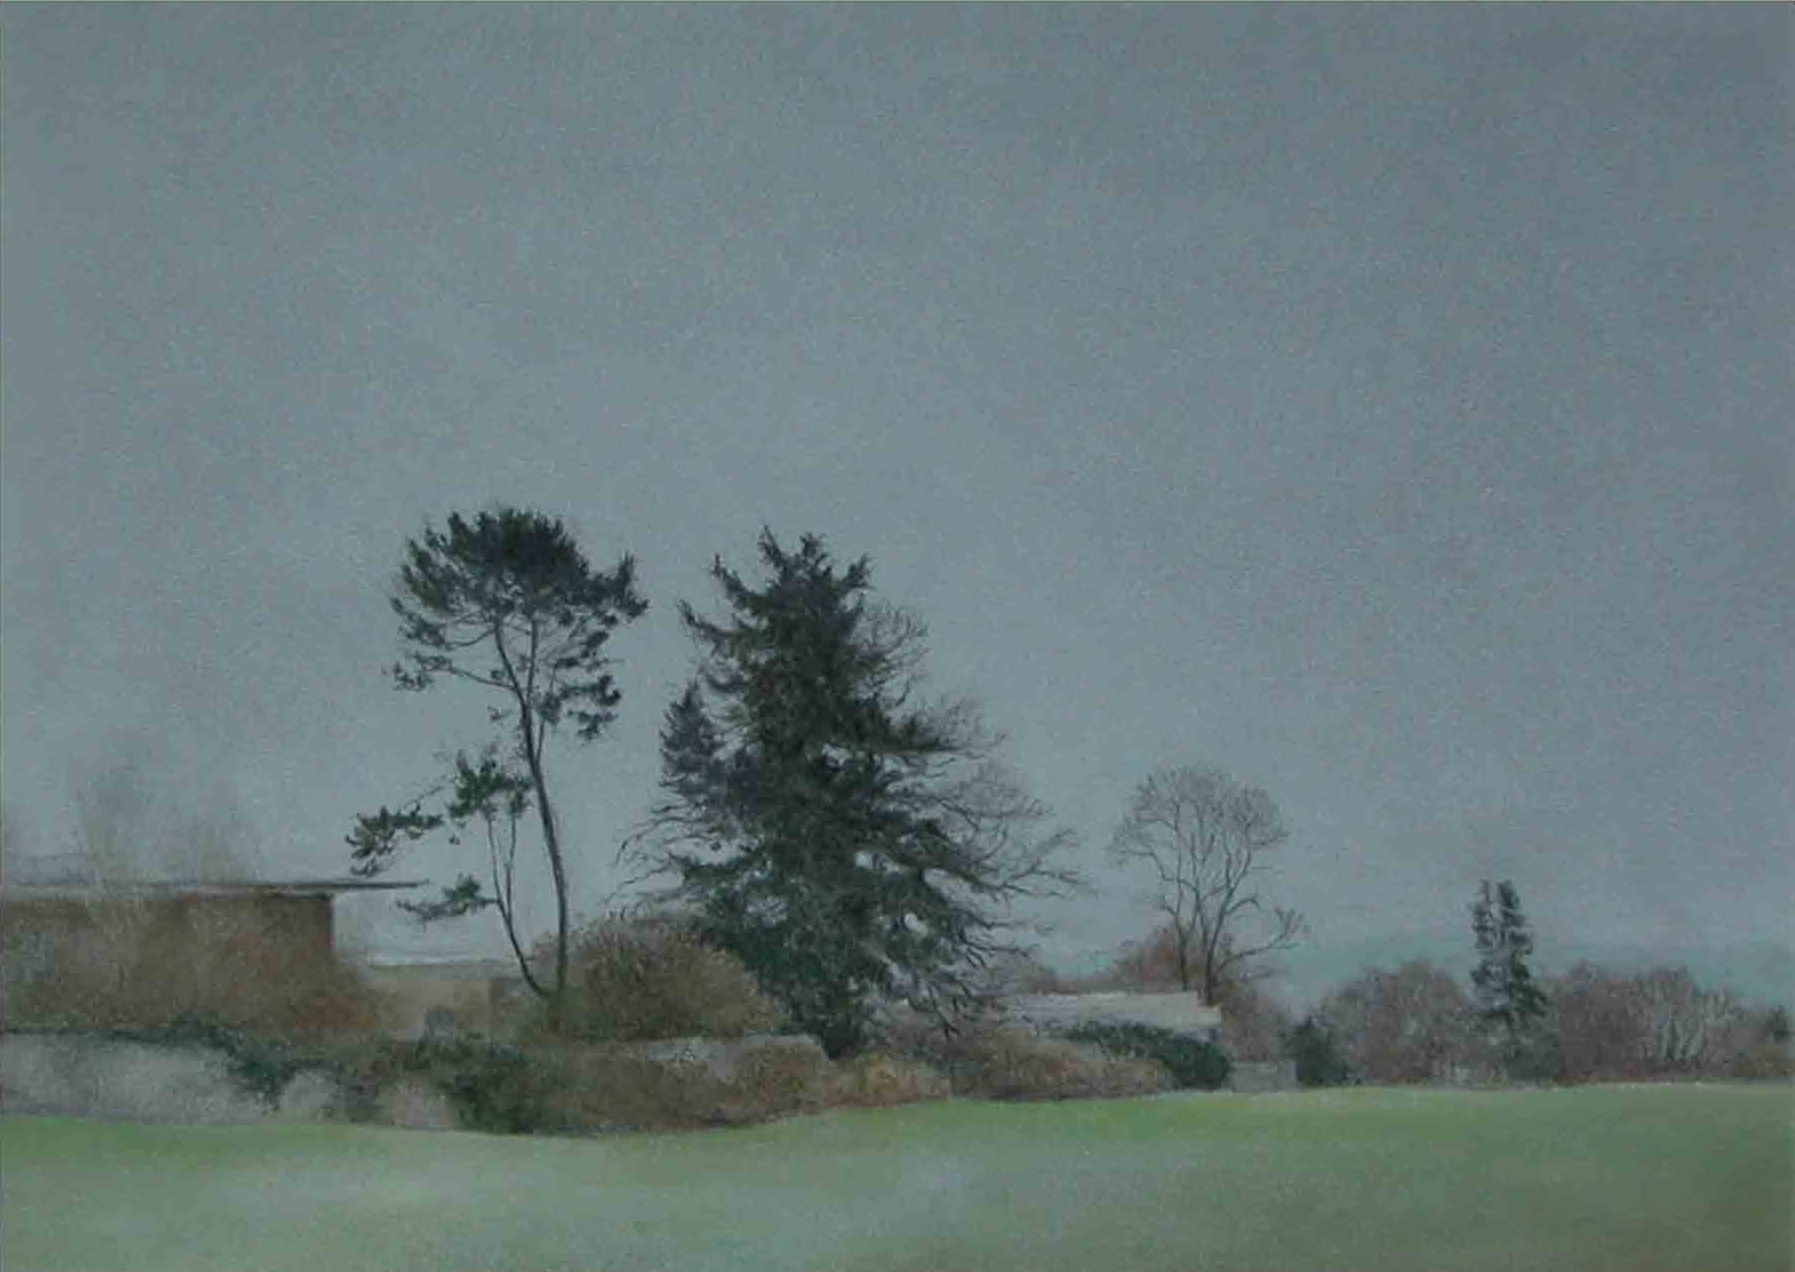 Alistair Teale 11th March 2011 - Tsunami Day 48 x 39 cm chalk pastel on paper £ 500 (framed)